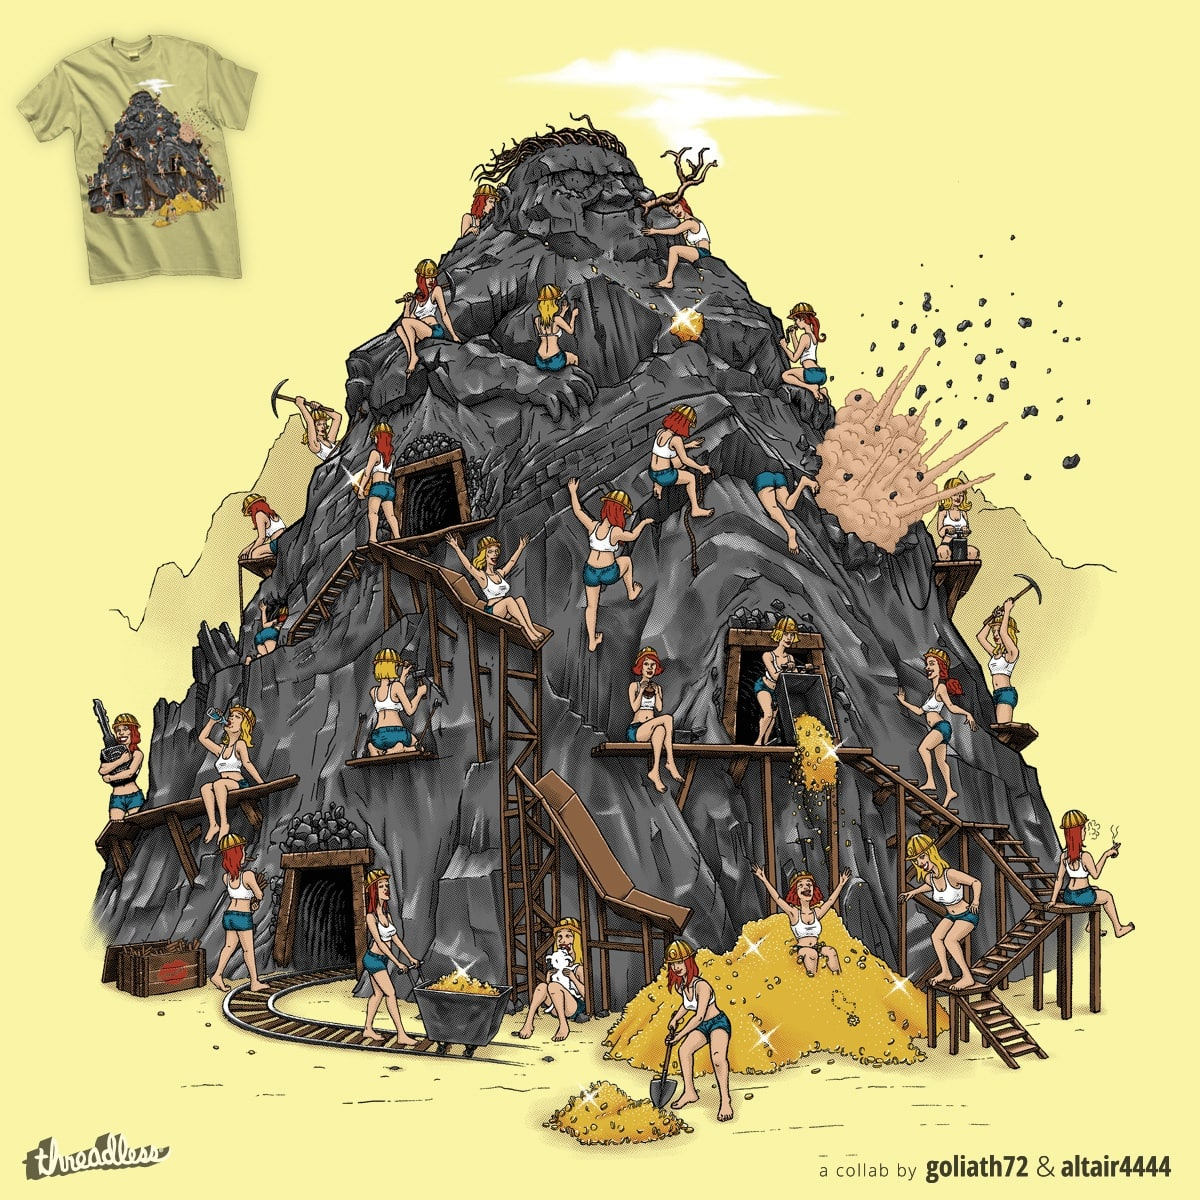 Gold Diggers by ersinerturk and goliath72 on Threadless